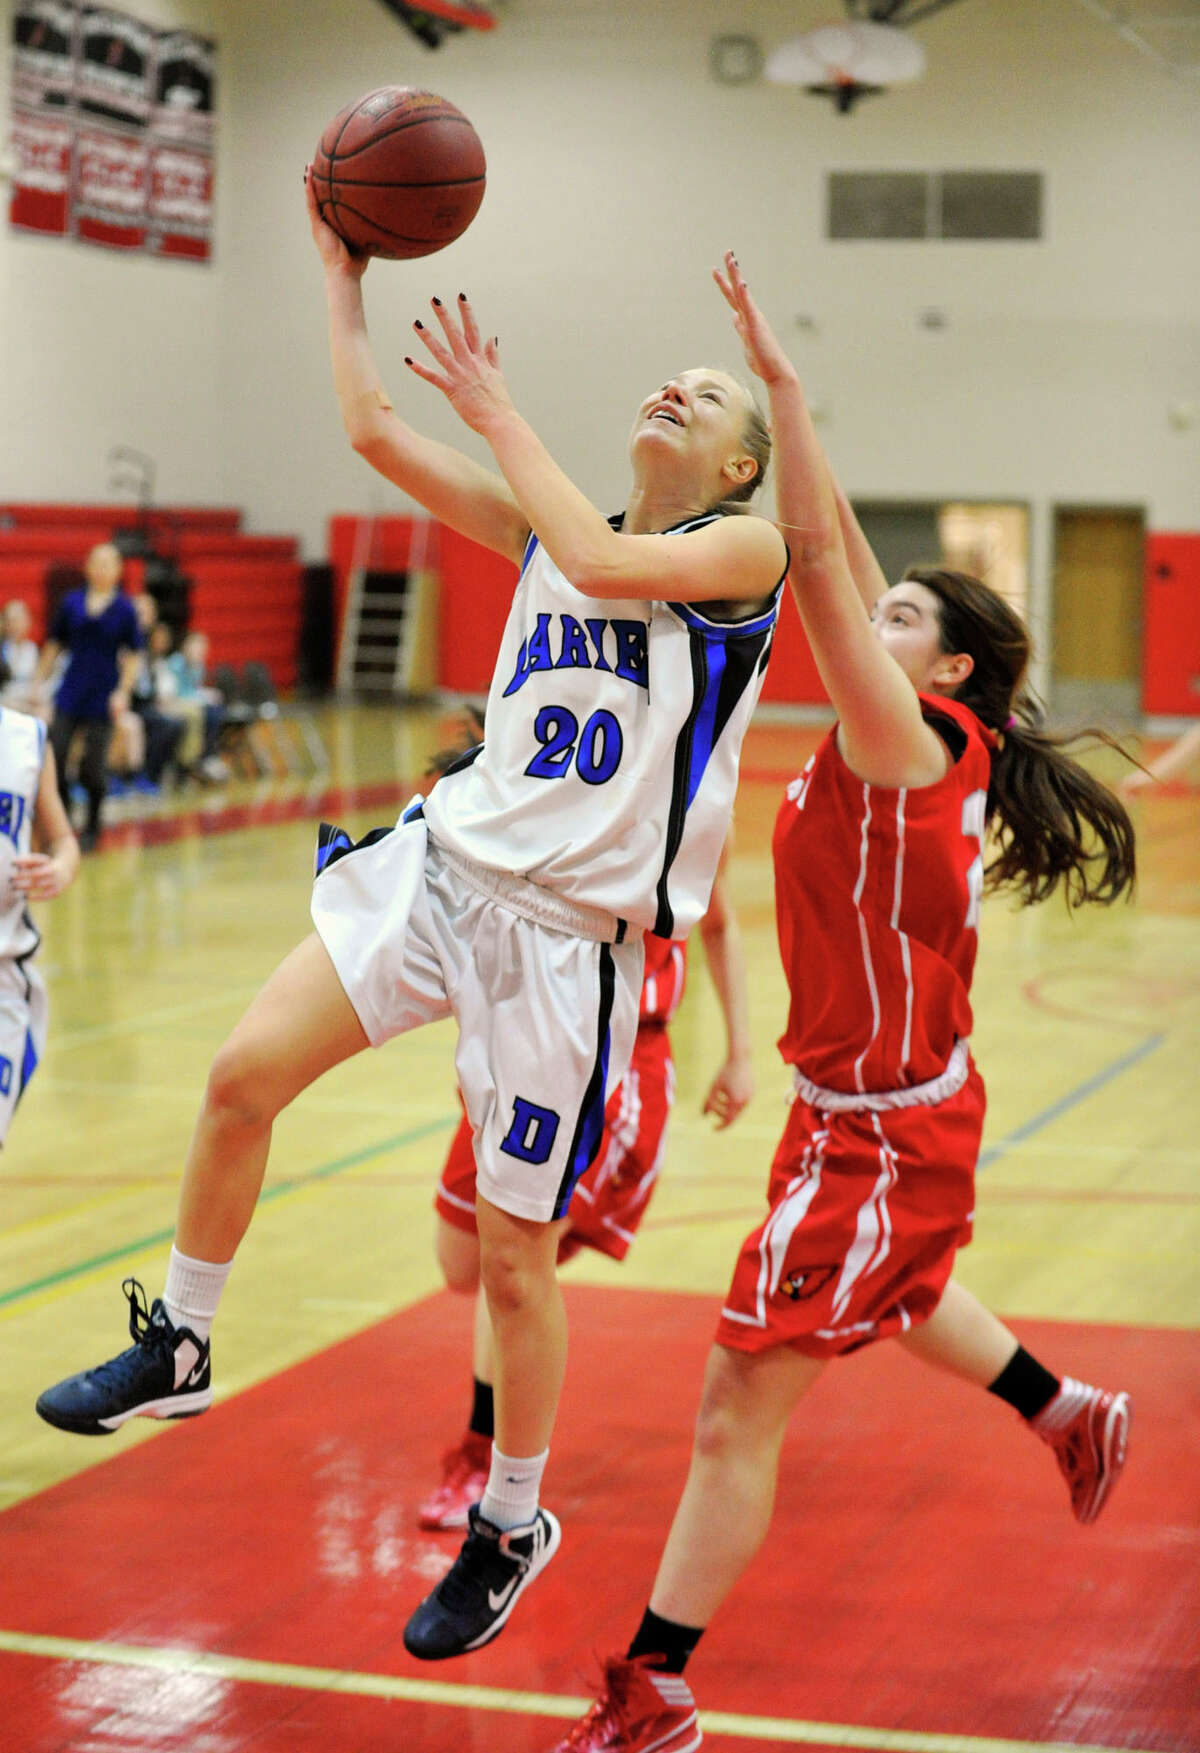 Darien's Kelly Karczewski lays the ball in while under pressure from Greenwich's Jamie Kockenmeister during the championship final of the 19th annual Tony LaVista Basketball Tournament at New Canaan High School in New Canaan, Conn., on Monday, Dec. 30, 2013. Greenwich won 66-36.